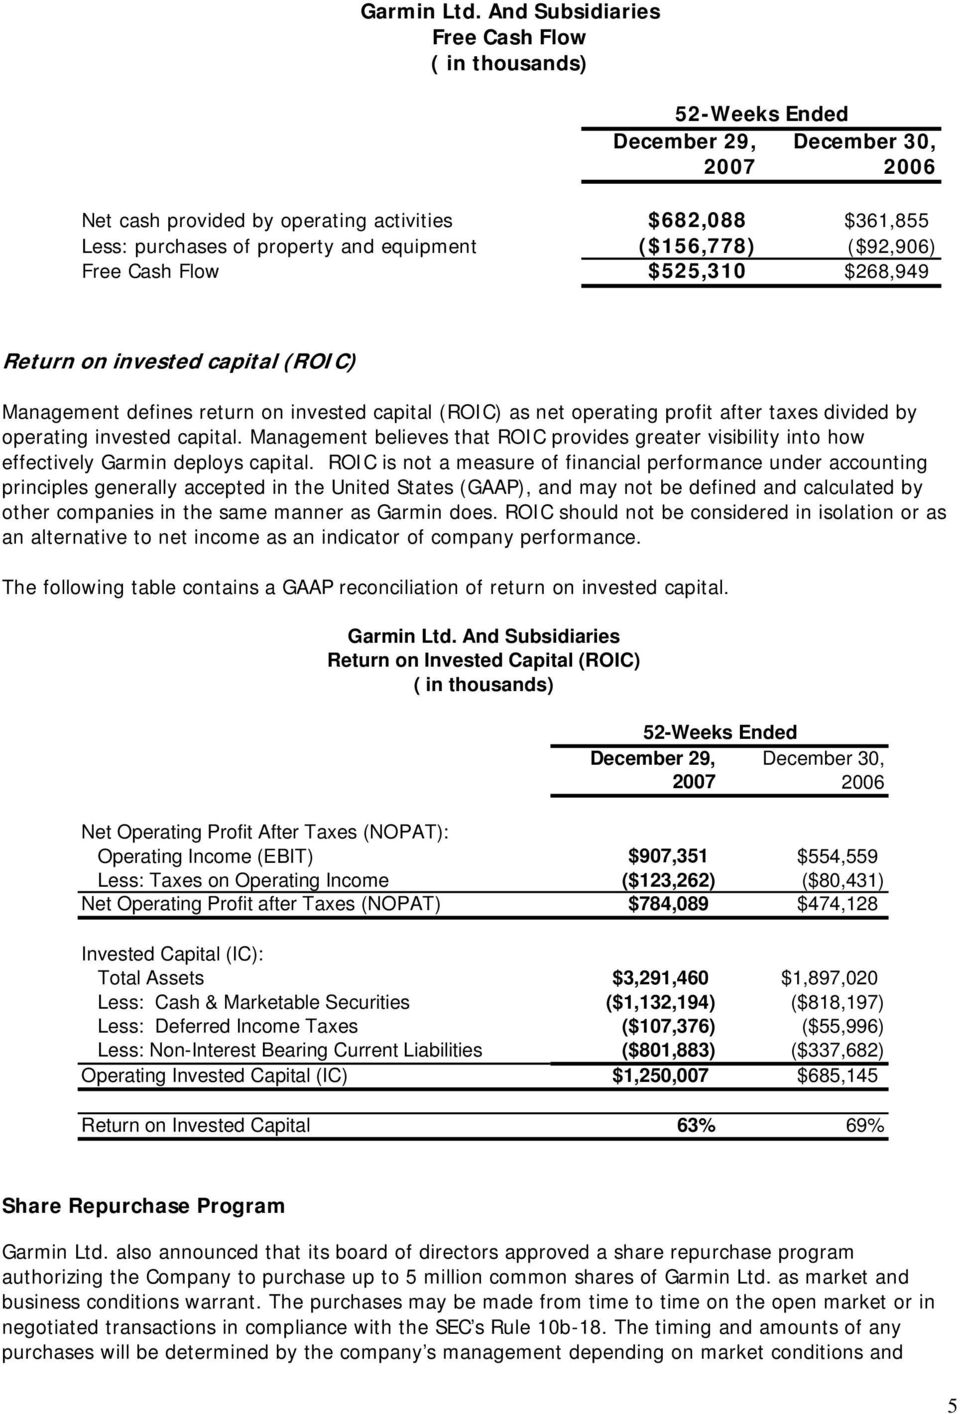 equipment ($156,778) ($92,906) Free Cash Flow $525,310 $268,949 Return on invested capital (ROIC) Management defines return on invested capital (ROIC) as net operating profit after taxes divided by